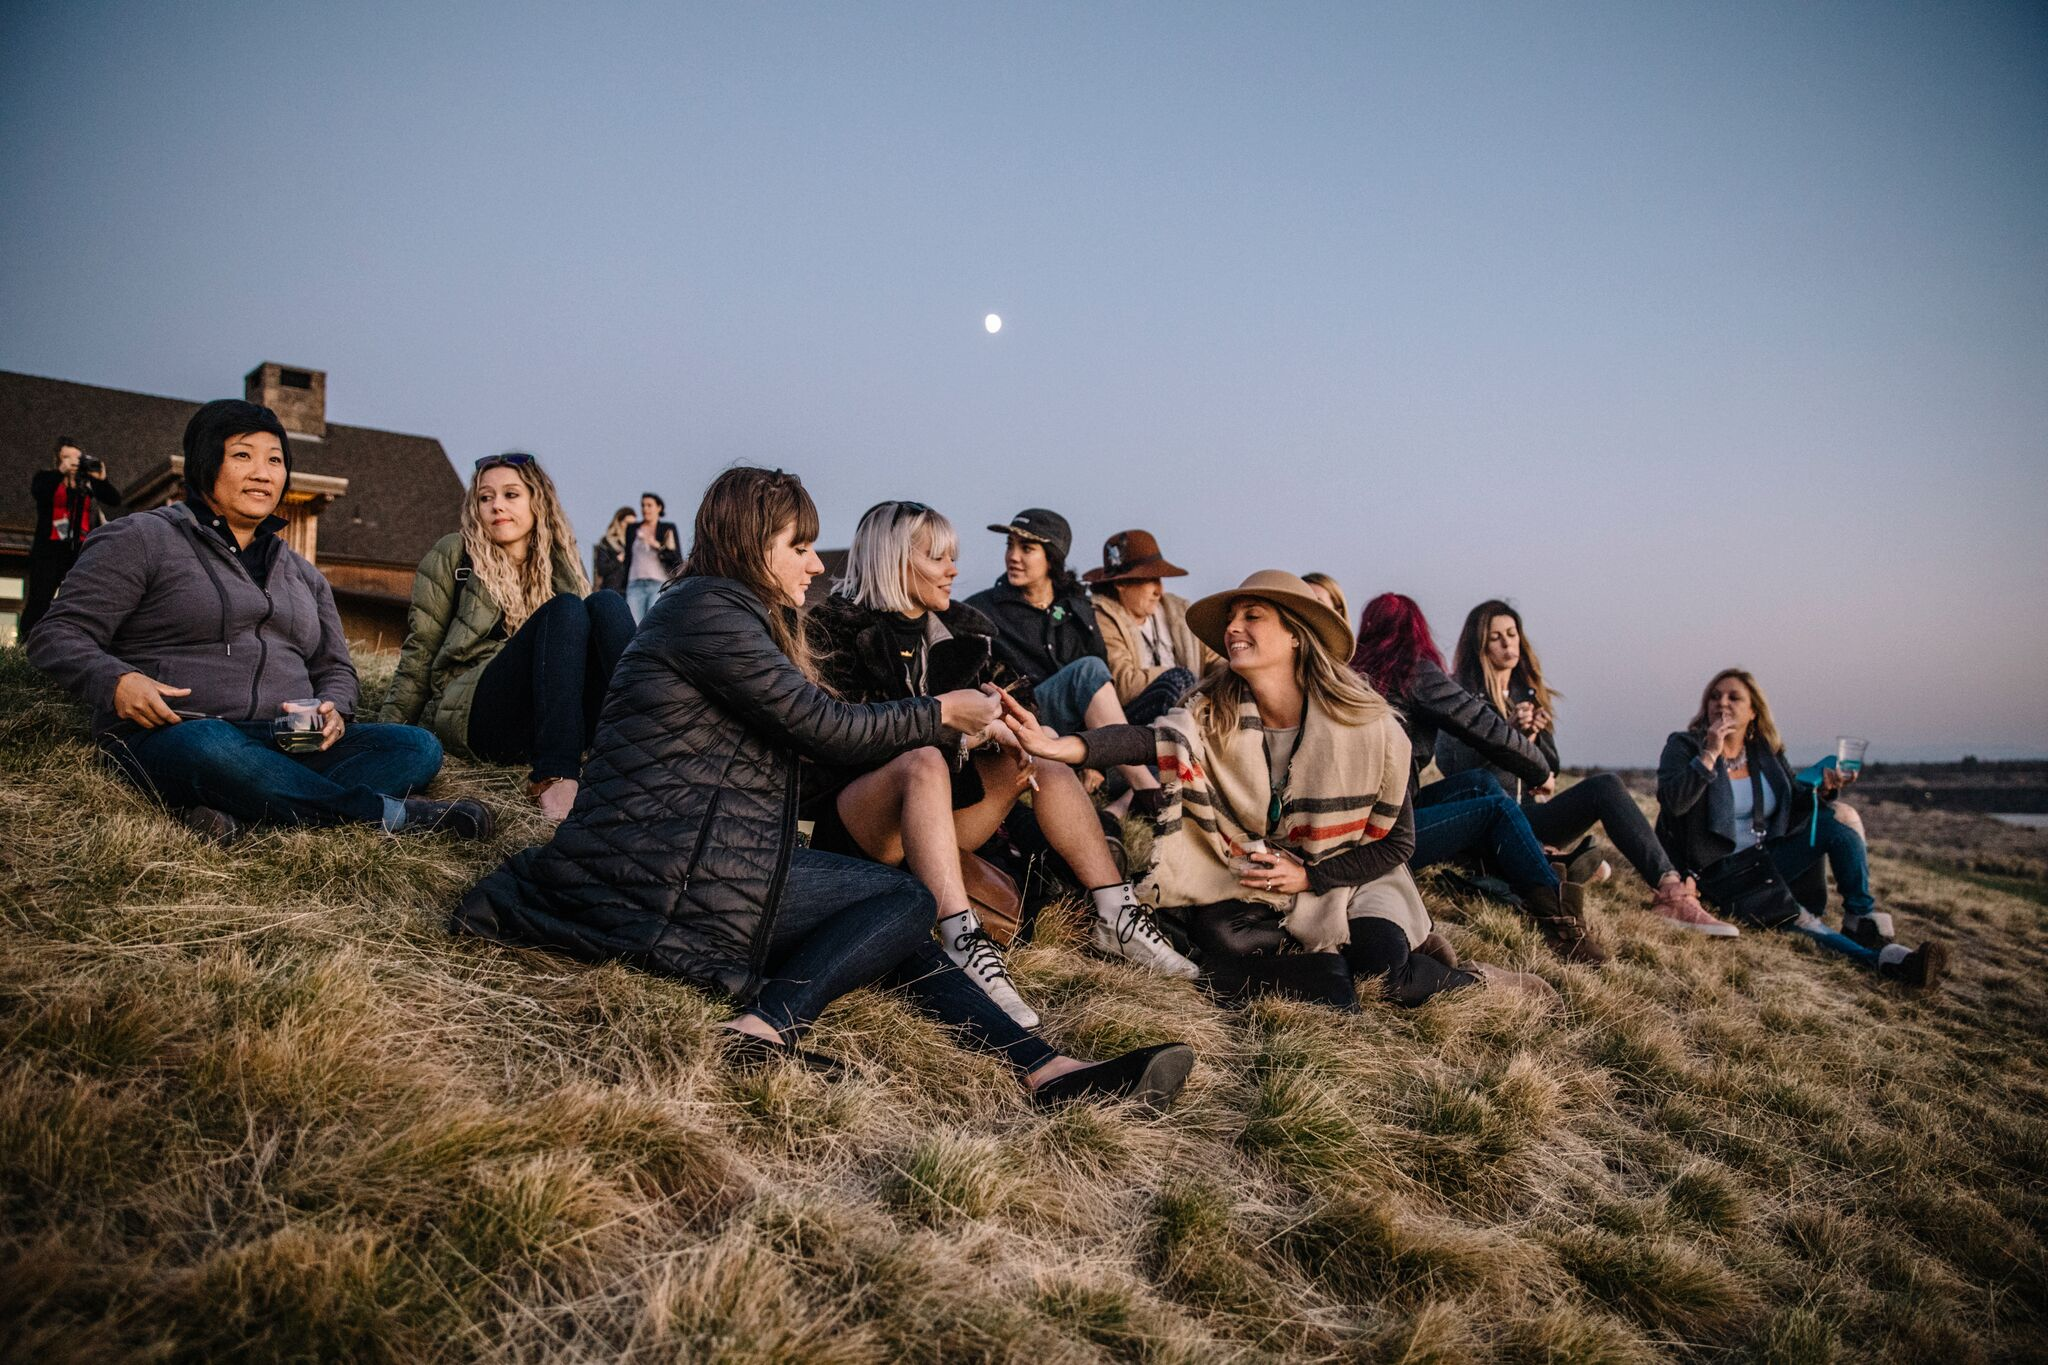 Women gather on grassy hill to watch sunset and share cannabis at the Hustle Hard Retreat in Bend, Oregon.